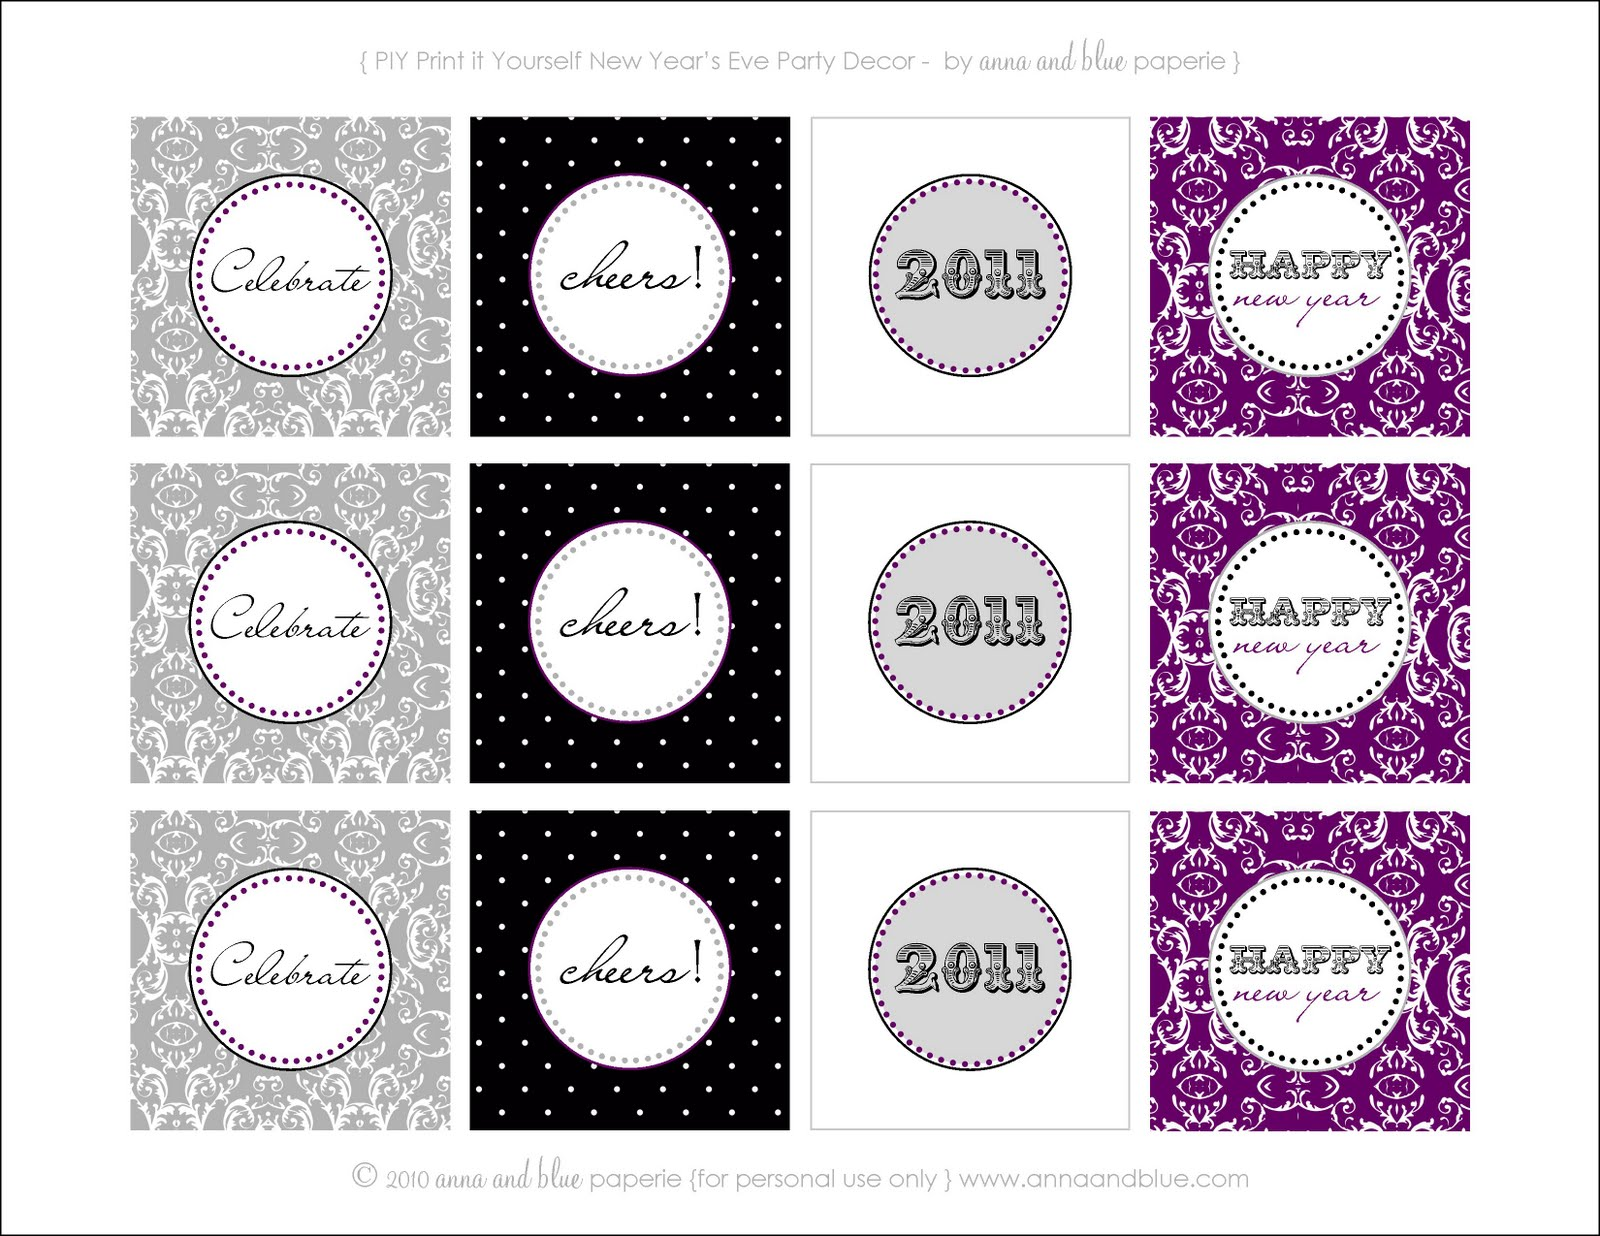 happy new year party printables skip to my lou